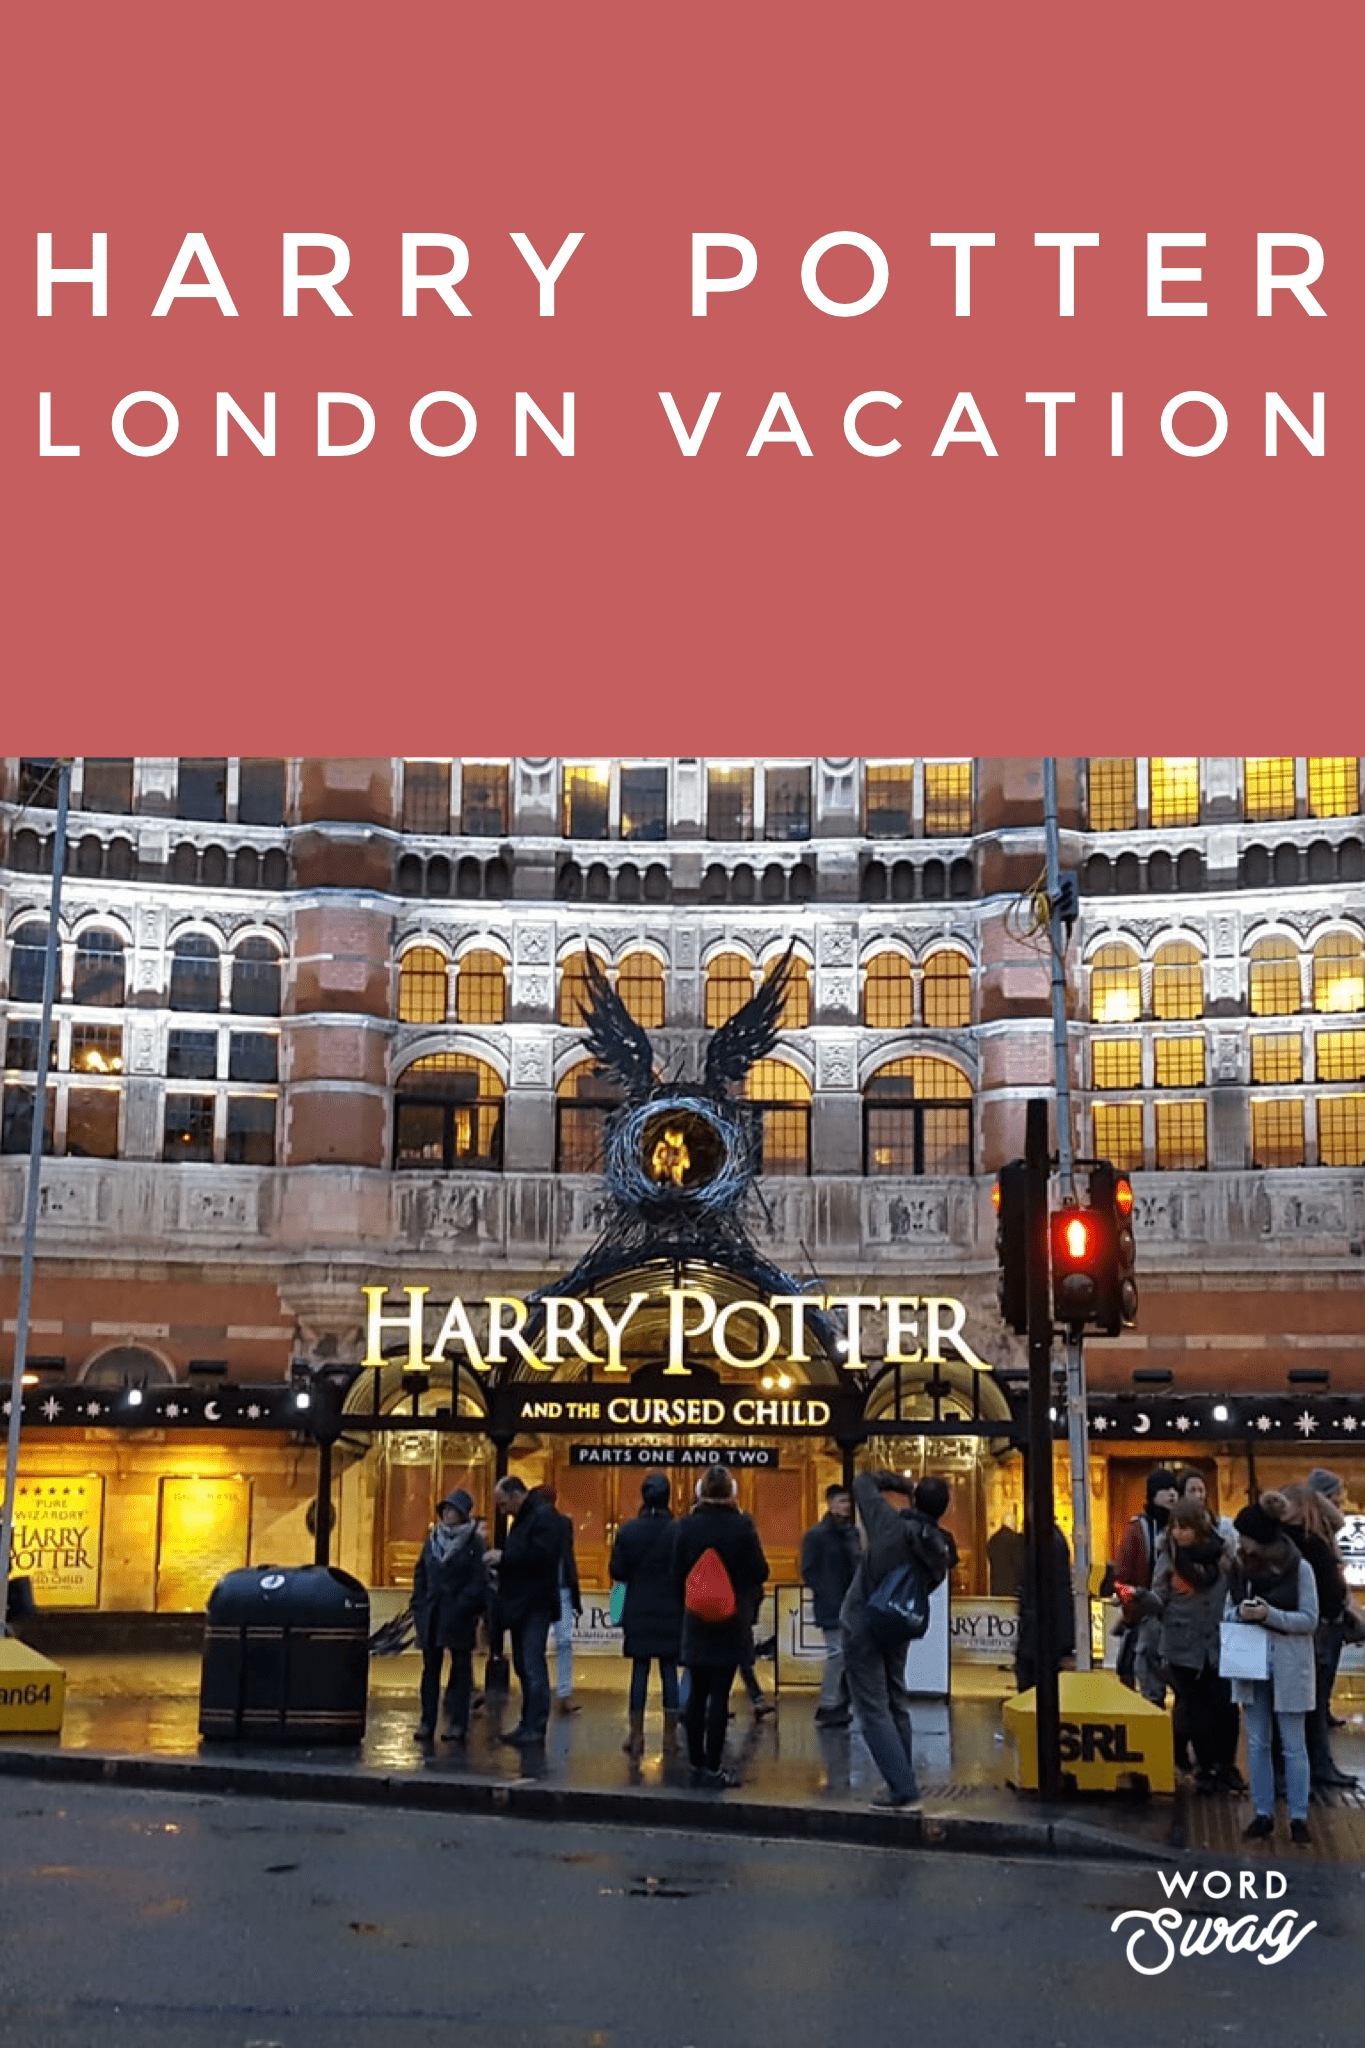 Plan a Harry Potter London Vacation